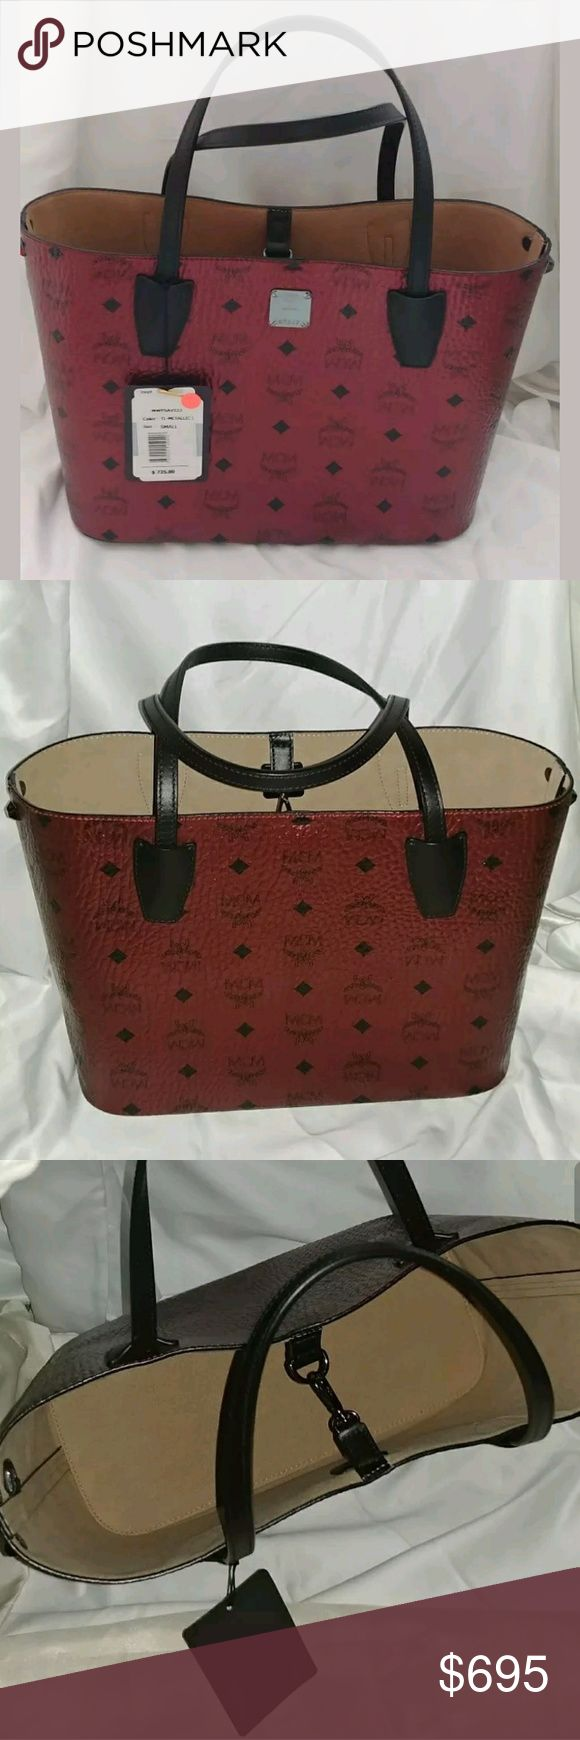 """$725 Auth MCM Metallic Project Visetos Small Tote Extremely Rare * Sold Out *MCMshopperbag. * The bag is multi-in color and is made of metallic monogram coated canvas. * MCMlogo * Black leather trim * Hook closure. * Individually numbered logo plate at front. * No pouch - didn't come with one. * Non MCM dust bag included * The measurements of the bag are 11"""" across bottom, 13"""" length top , width 5"""", the height is 8.5"""" and has double handle top handles with 6.5"""" drop. A highly…"""